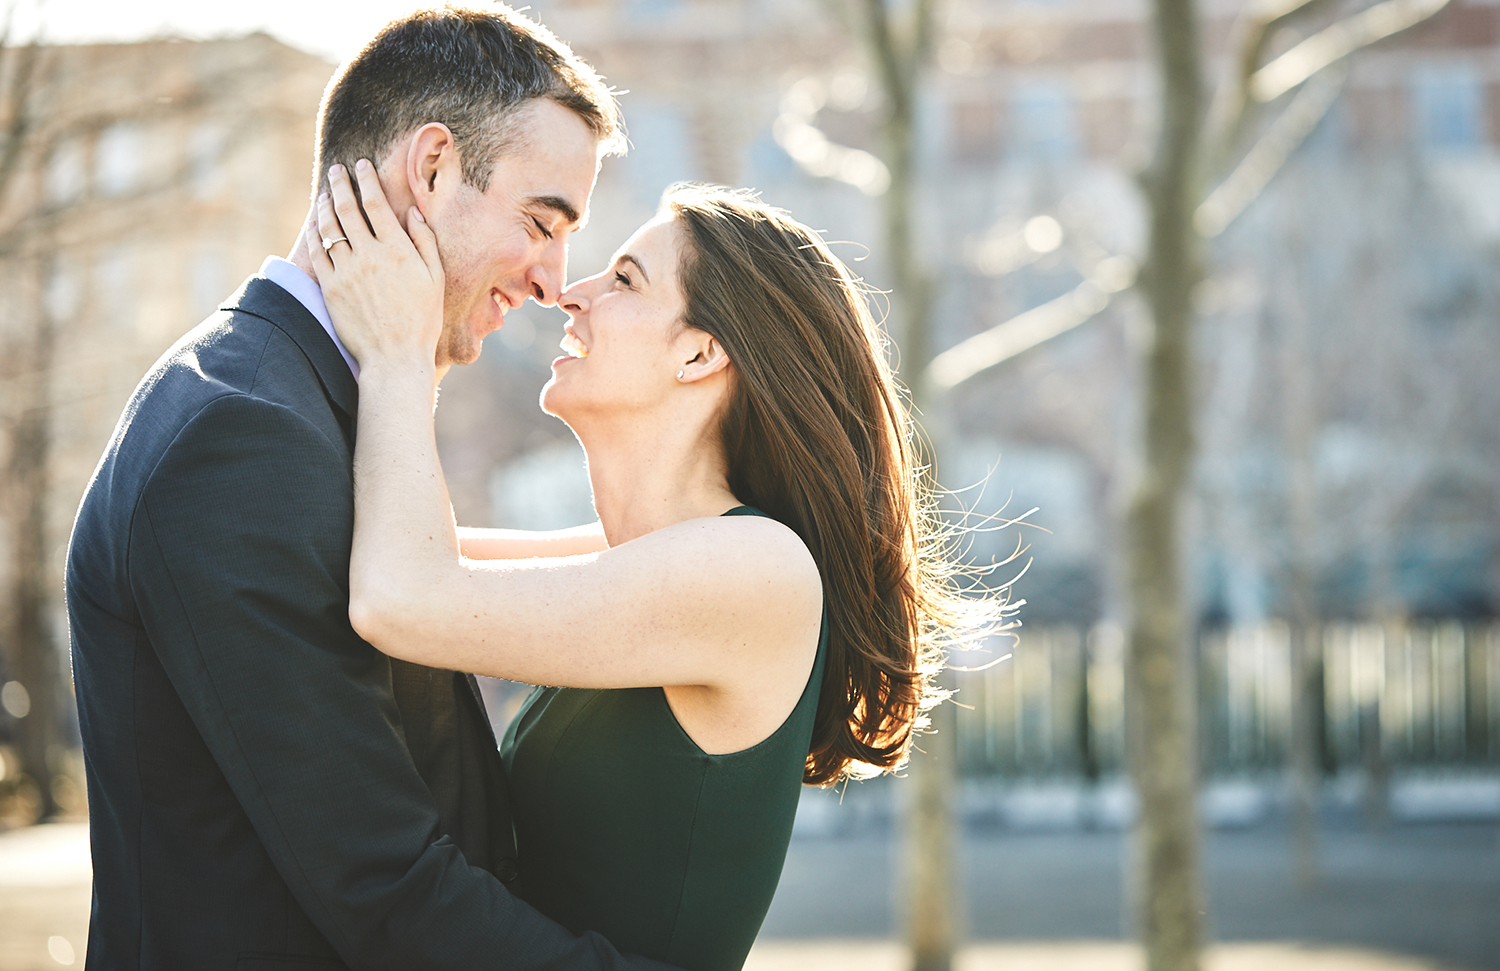 180422_StevensInstitureofTechnologyEngagementPhotography_HobokenEngagement Photography_By_BriJohnsonWeddings_0020.jpg